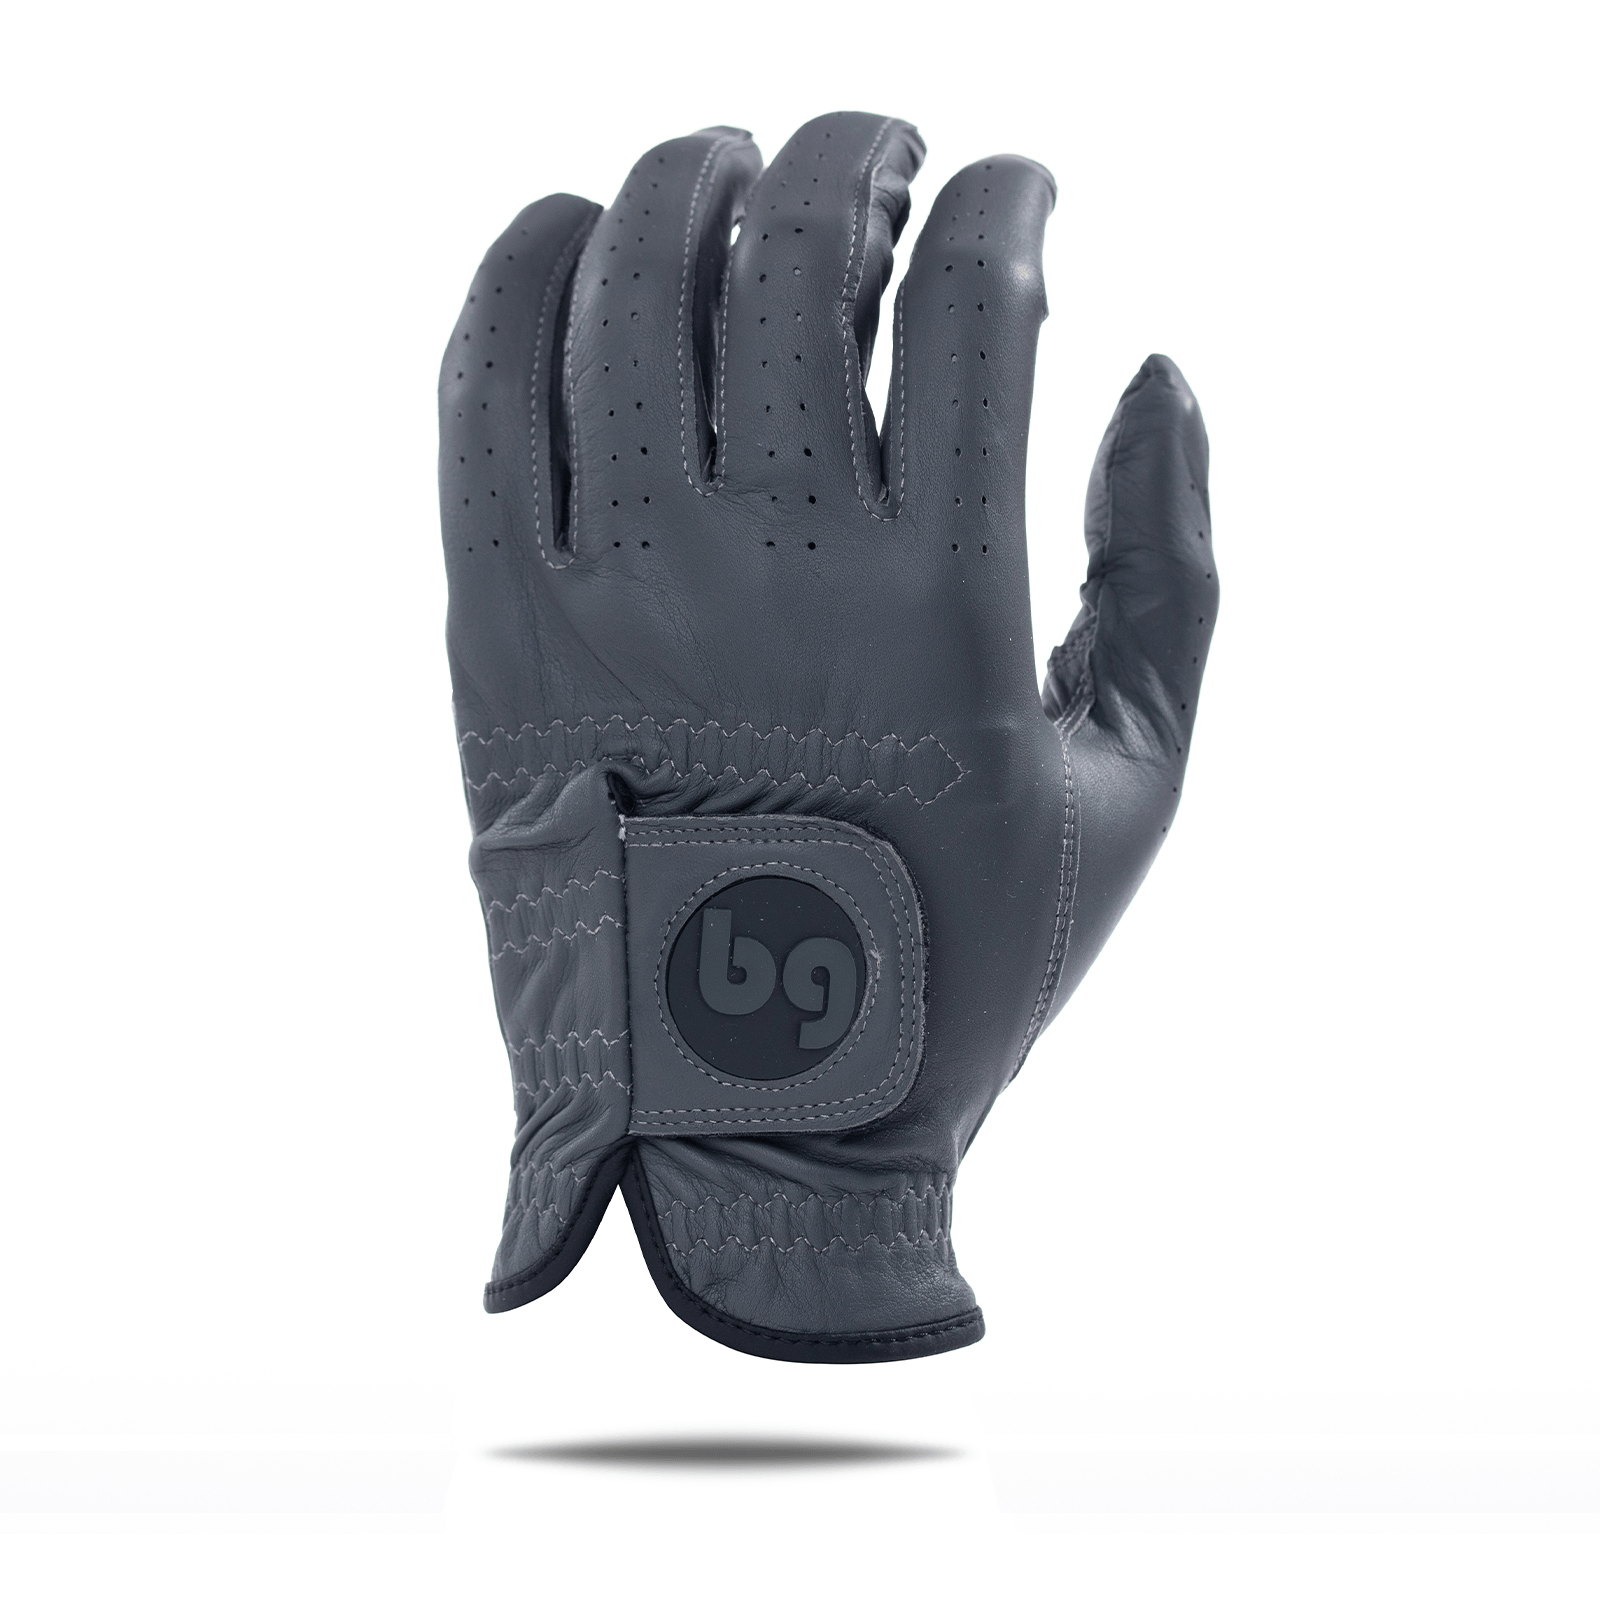 Gray Elite Tour Golf Glove